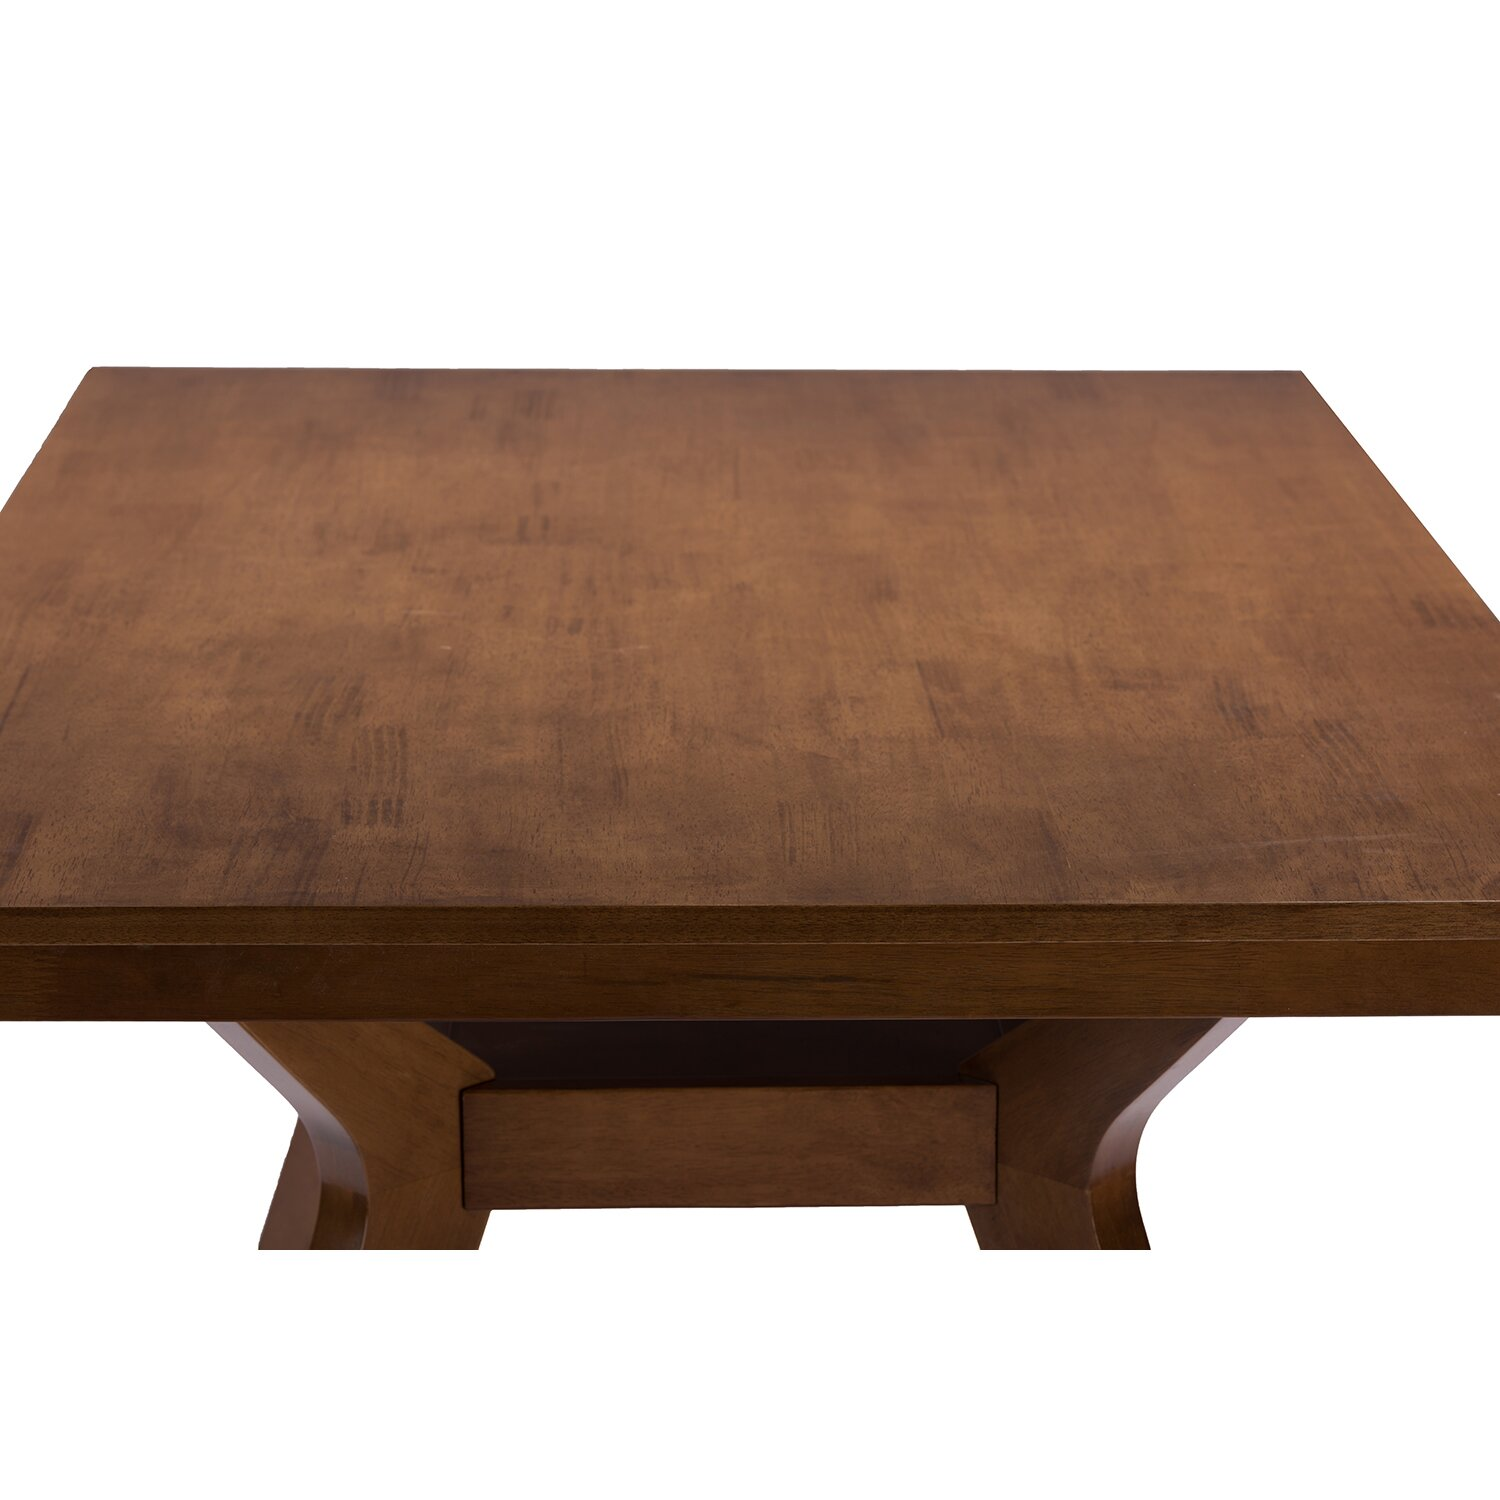 Wholesale Dining Tables: Wholesale Interiors Baxton Studio Dining Table & Reviews